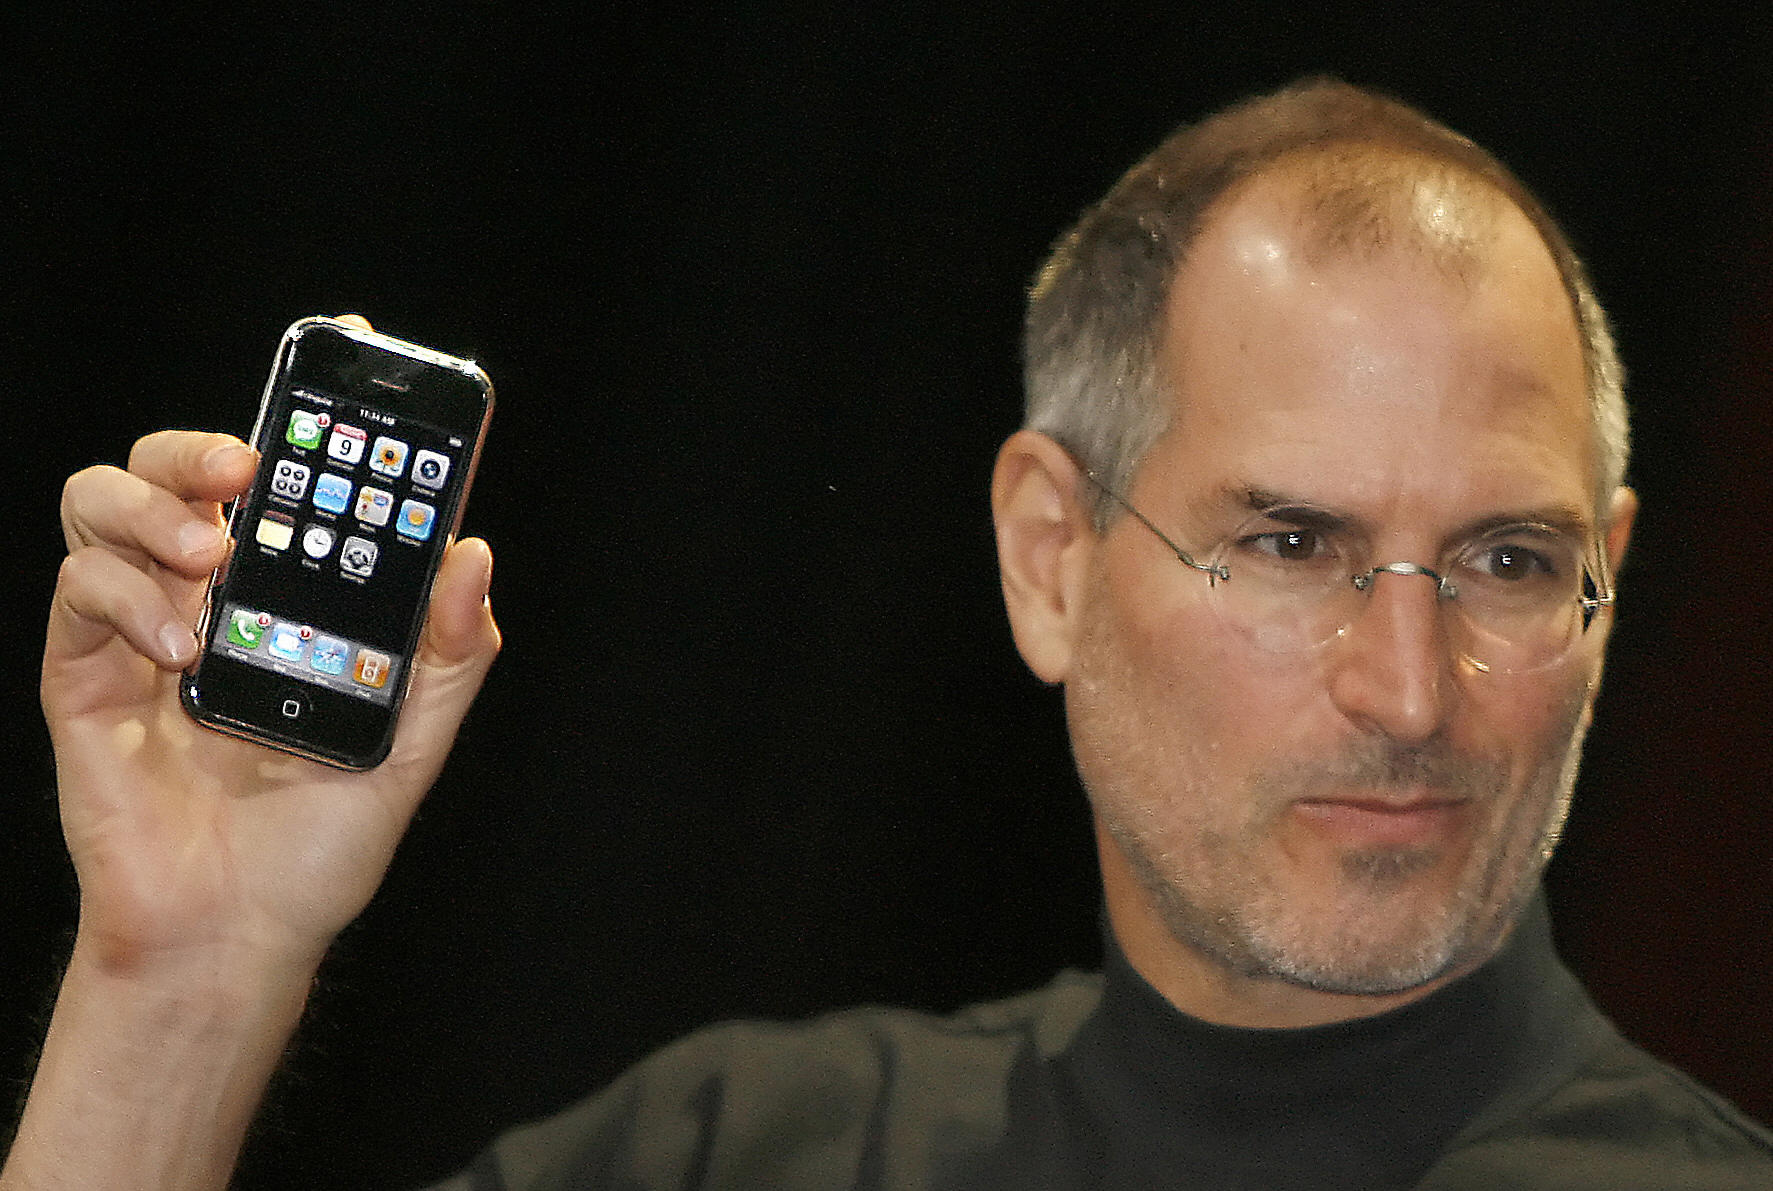 Apple unveils iPhone in 2007